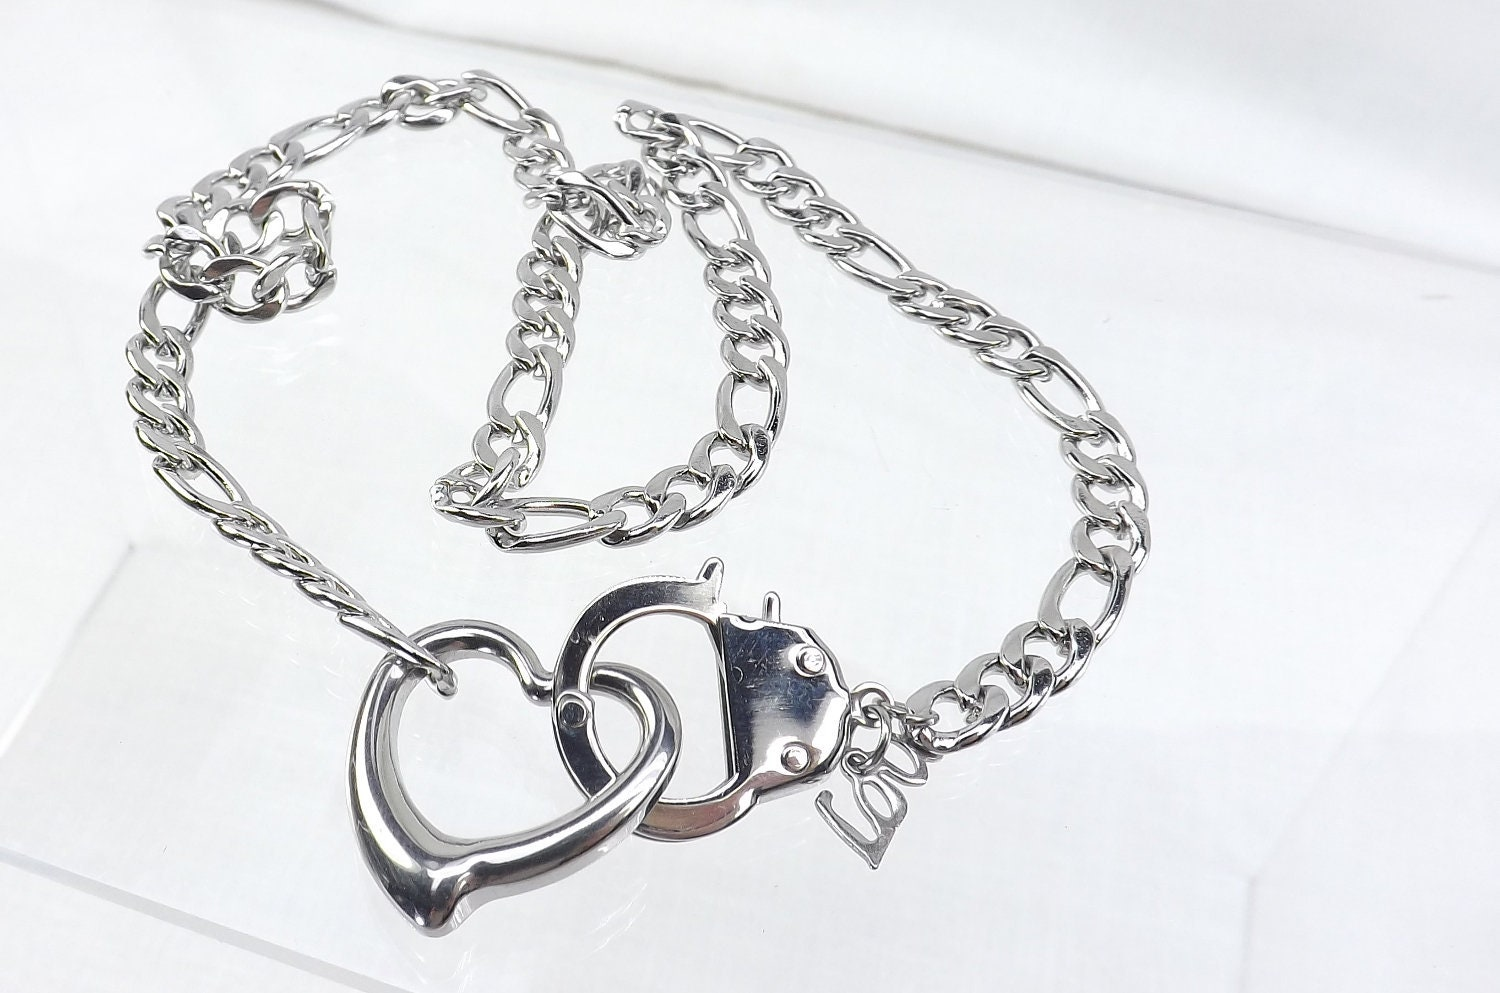 Bdsm,day,collar,stainless,steel,heart,love,slave,chain,and,handcuff,clasp,mature,bdsm,gift,discreet,submissive,jewelry,bdsm day collar,bdsm gift,stainless steel,steel collar,discreet day collar,handcuff collar,heart collar,bondage collar,day chain collar,submissive collar,slave chain collar,bdsm jewelry,submissive jewelry,Stainless steel